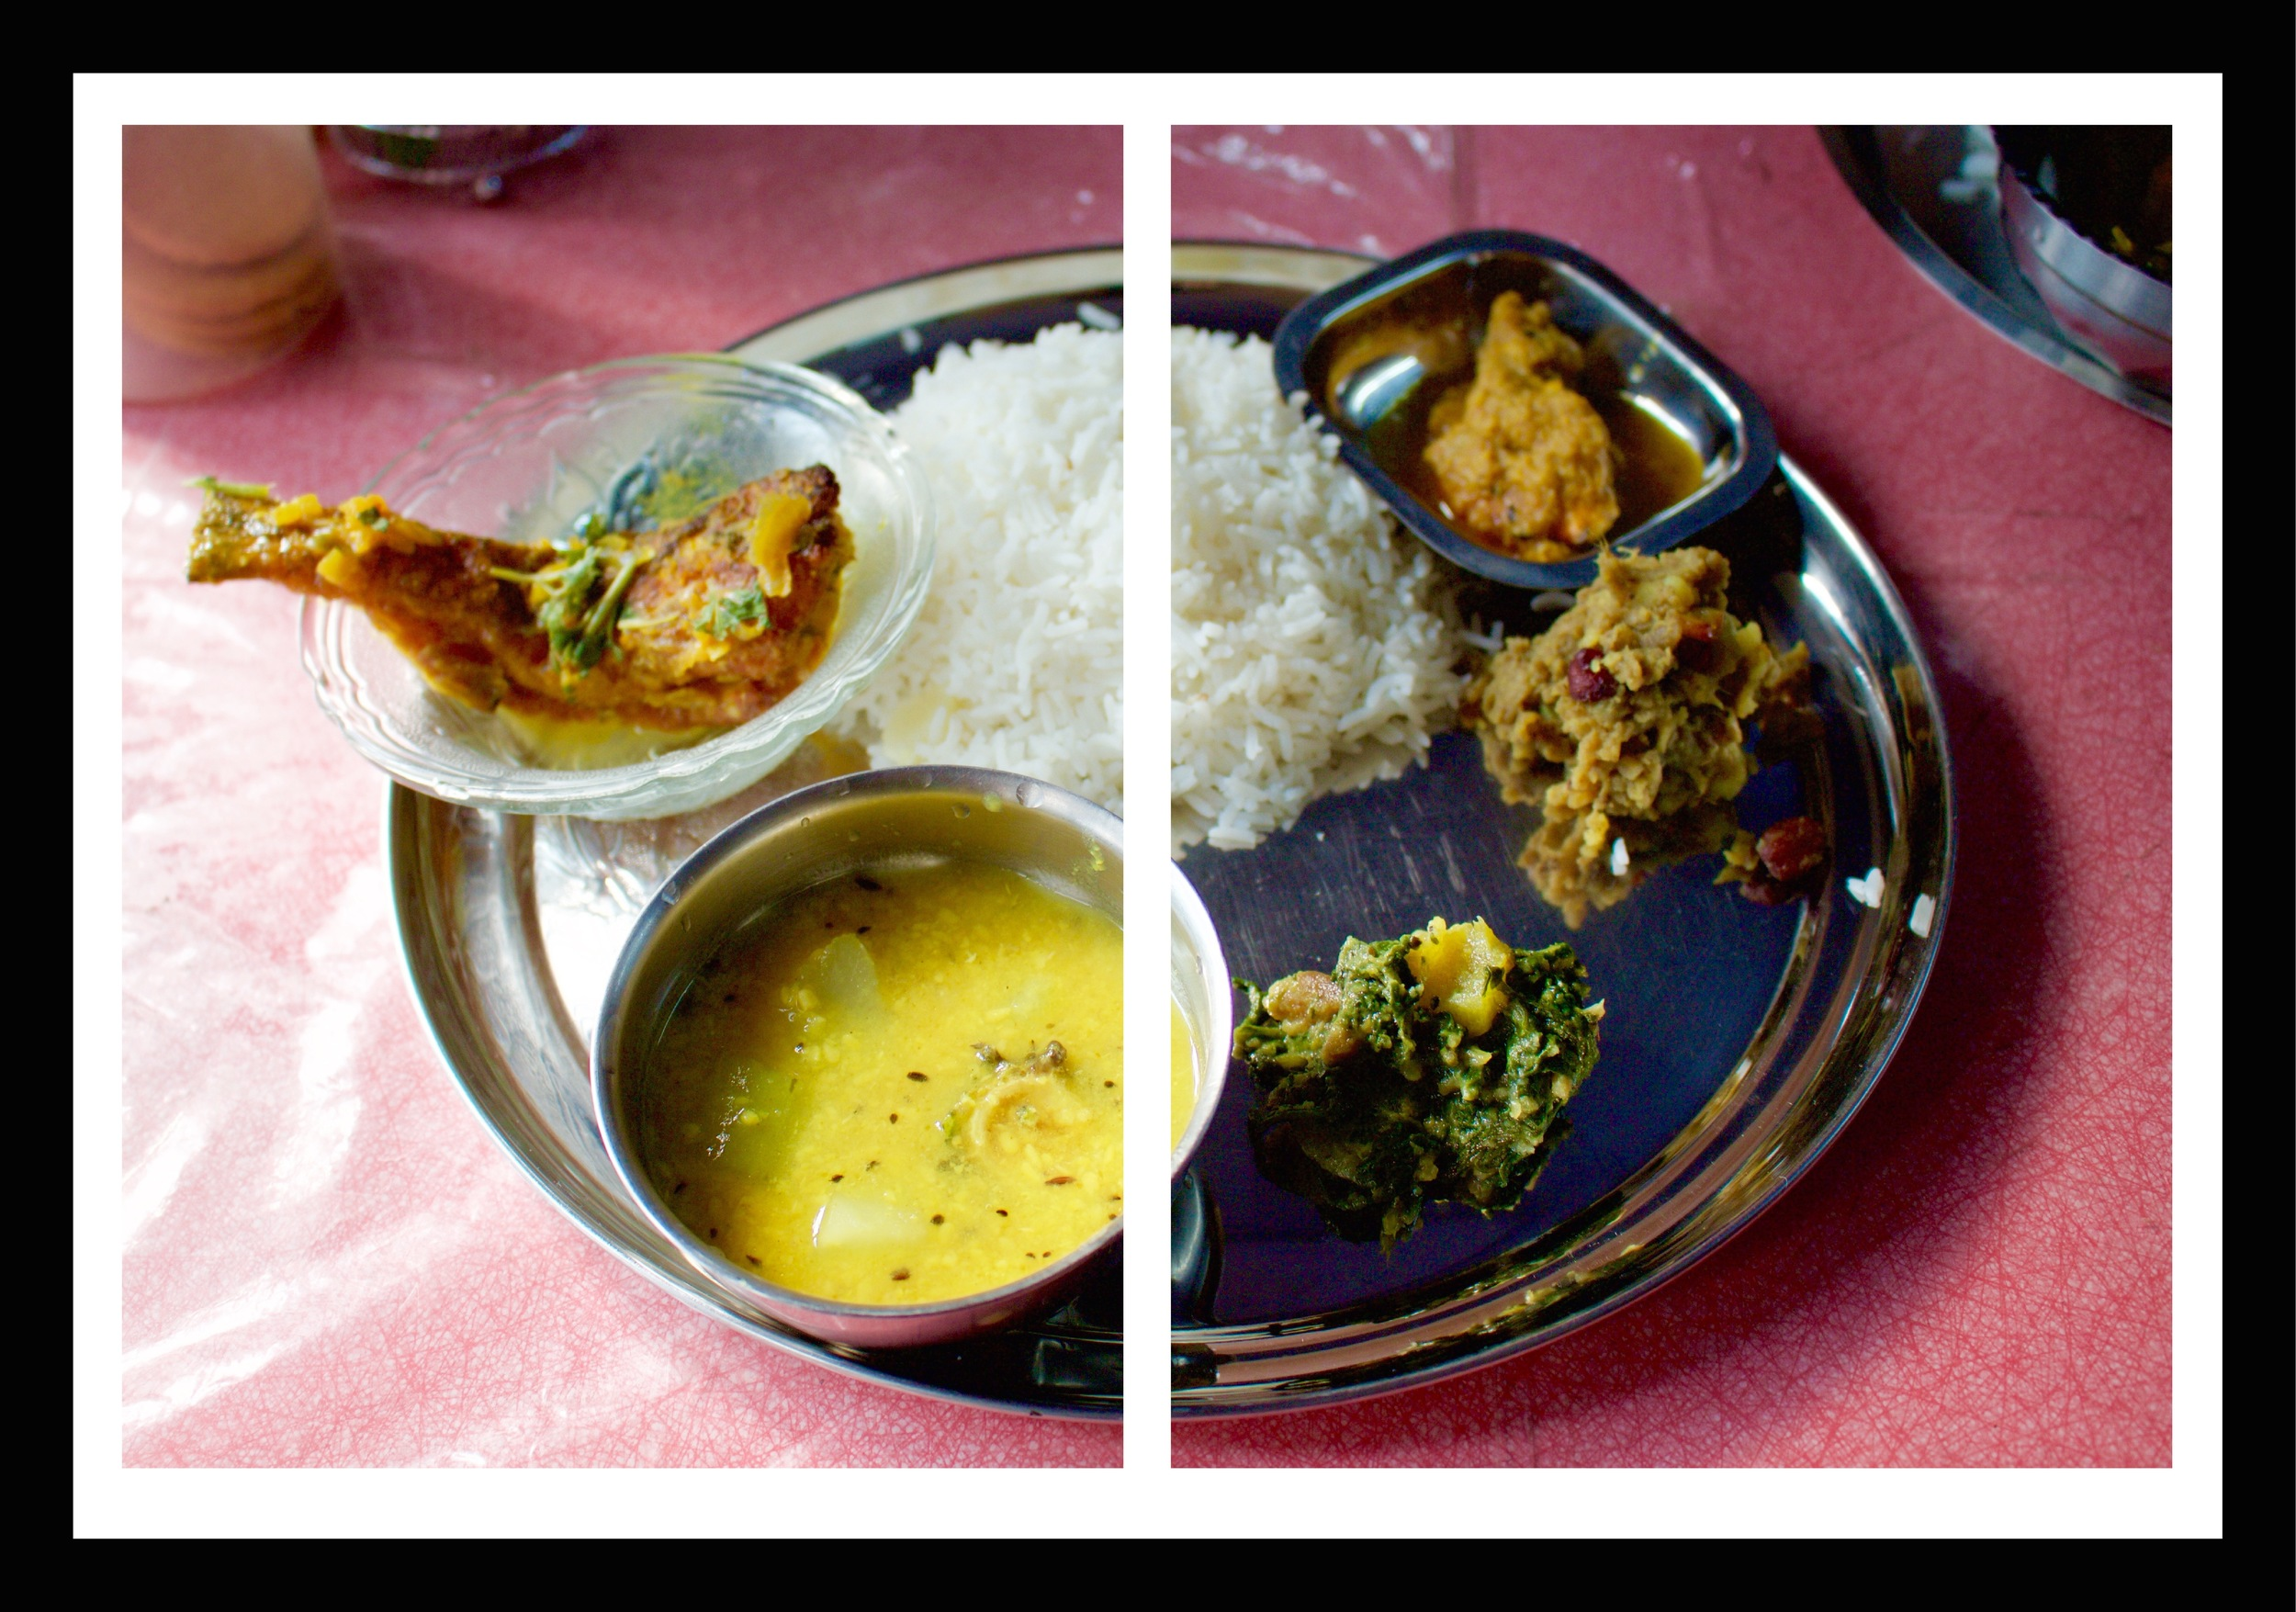 Dinner TIme at the Sarkar Villa_black12.jpg